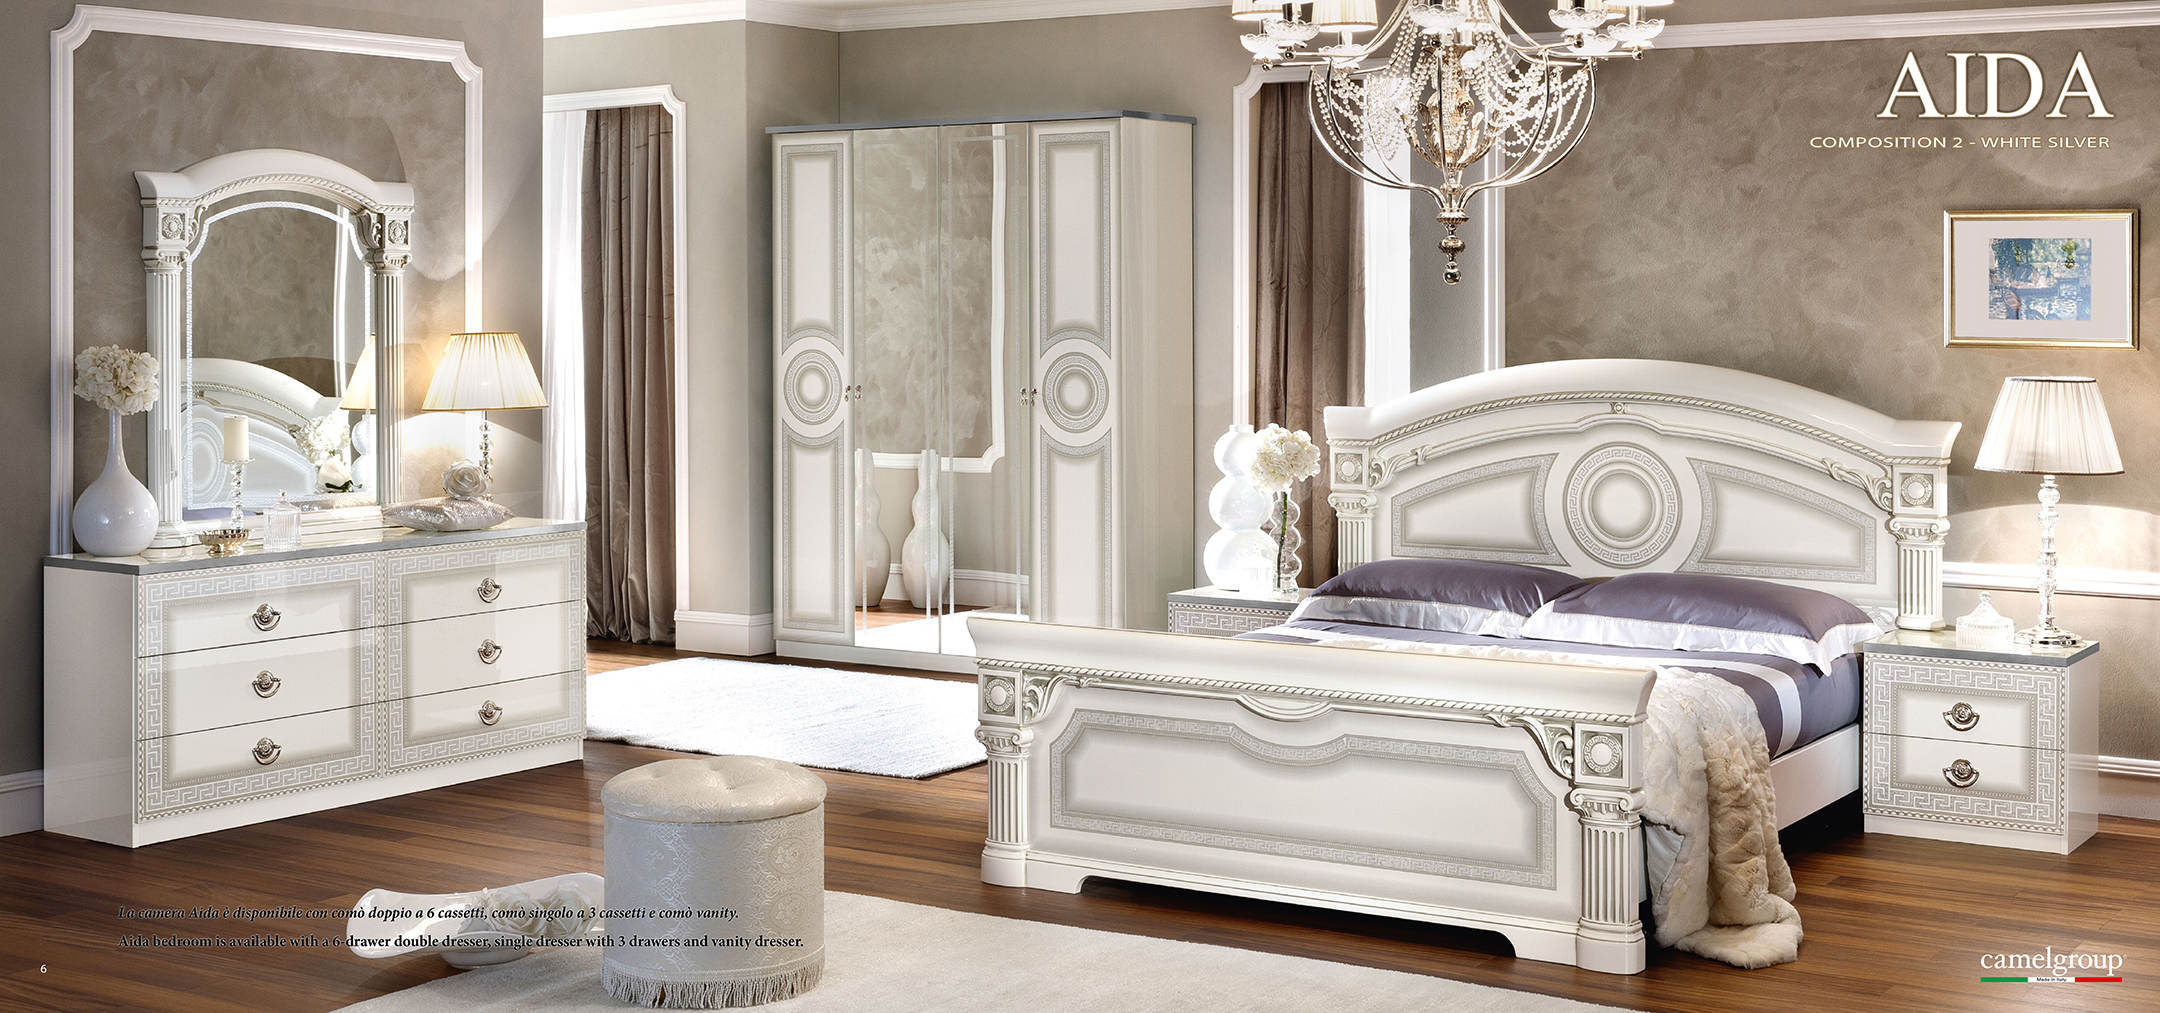 Aida White w/Silver, Camelgroup Italy, Classic Bedrooms ...